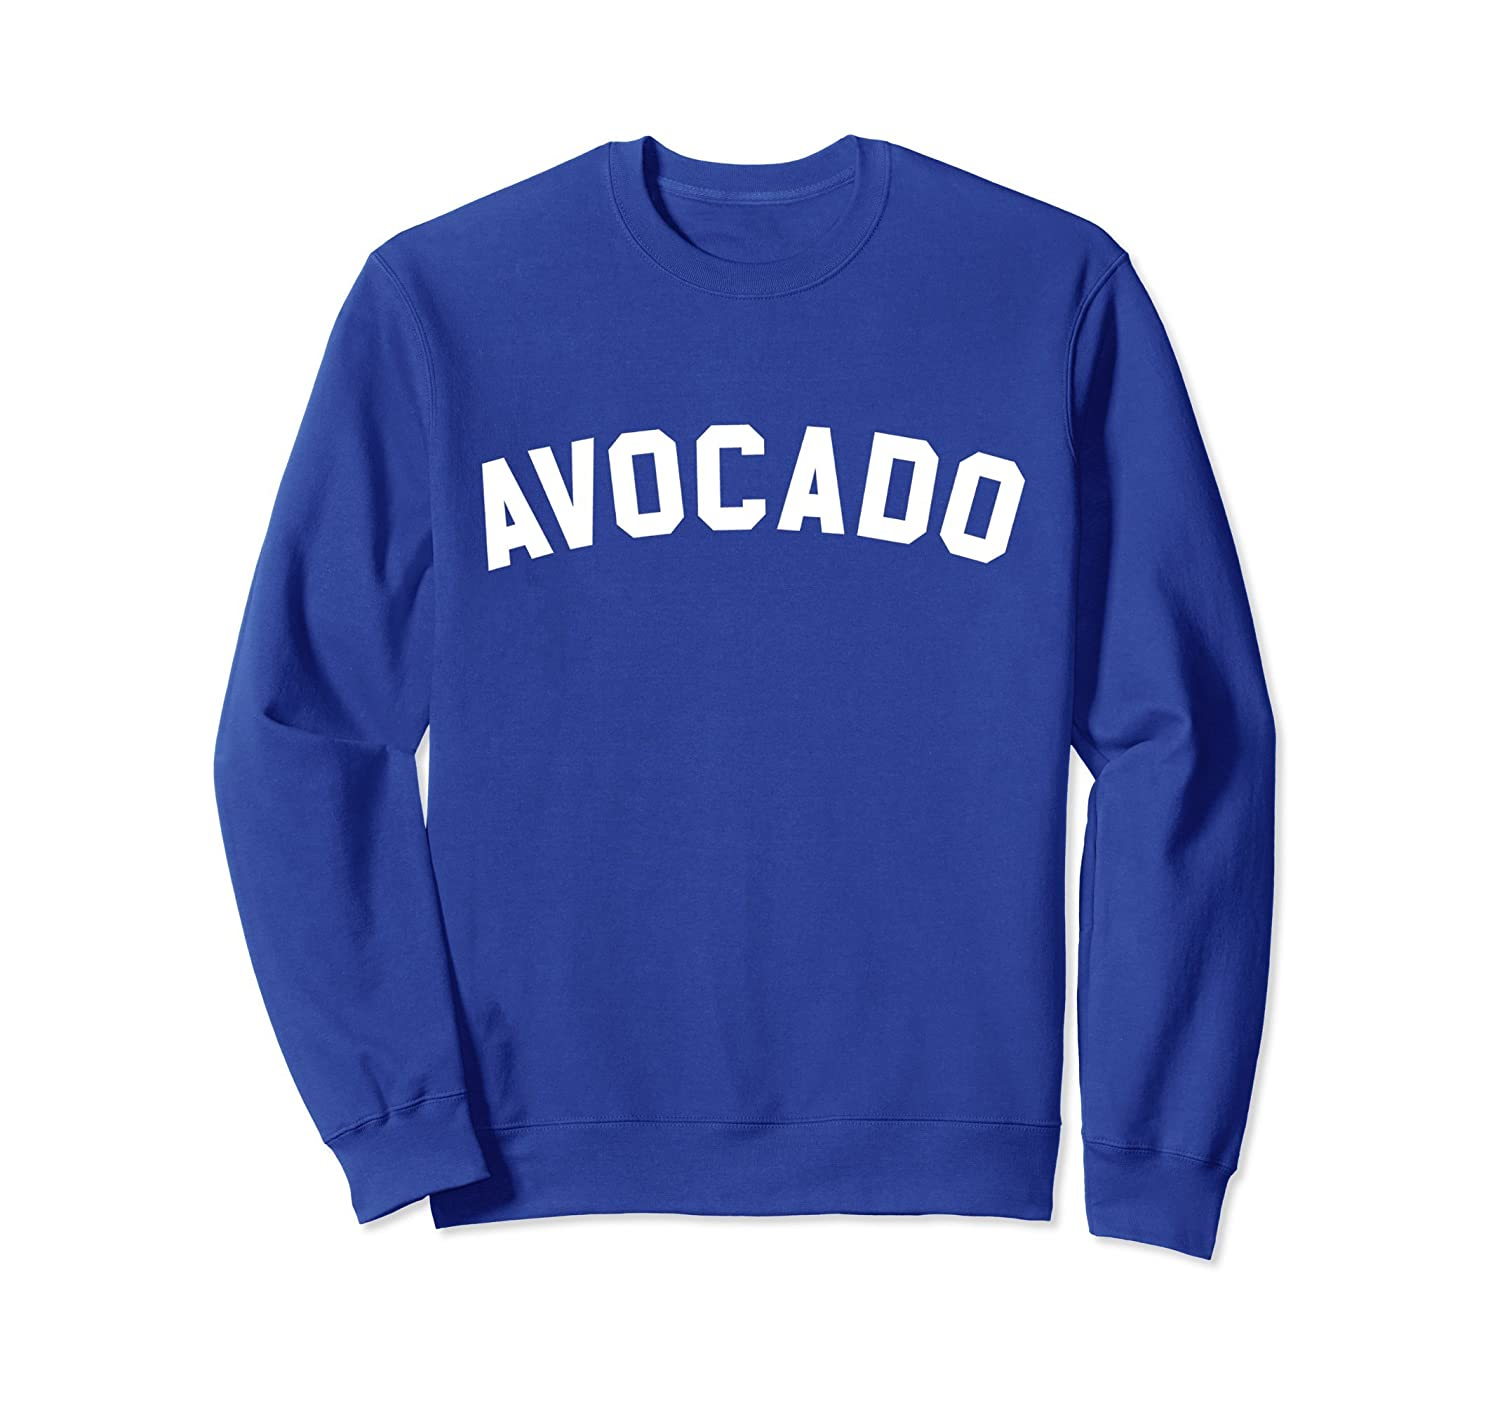 Avocado Sweatshirt - Athletic Gym Text Print-TH